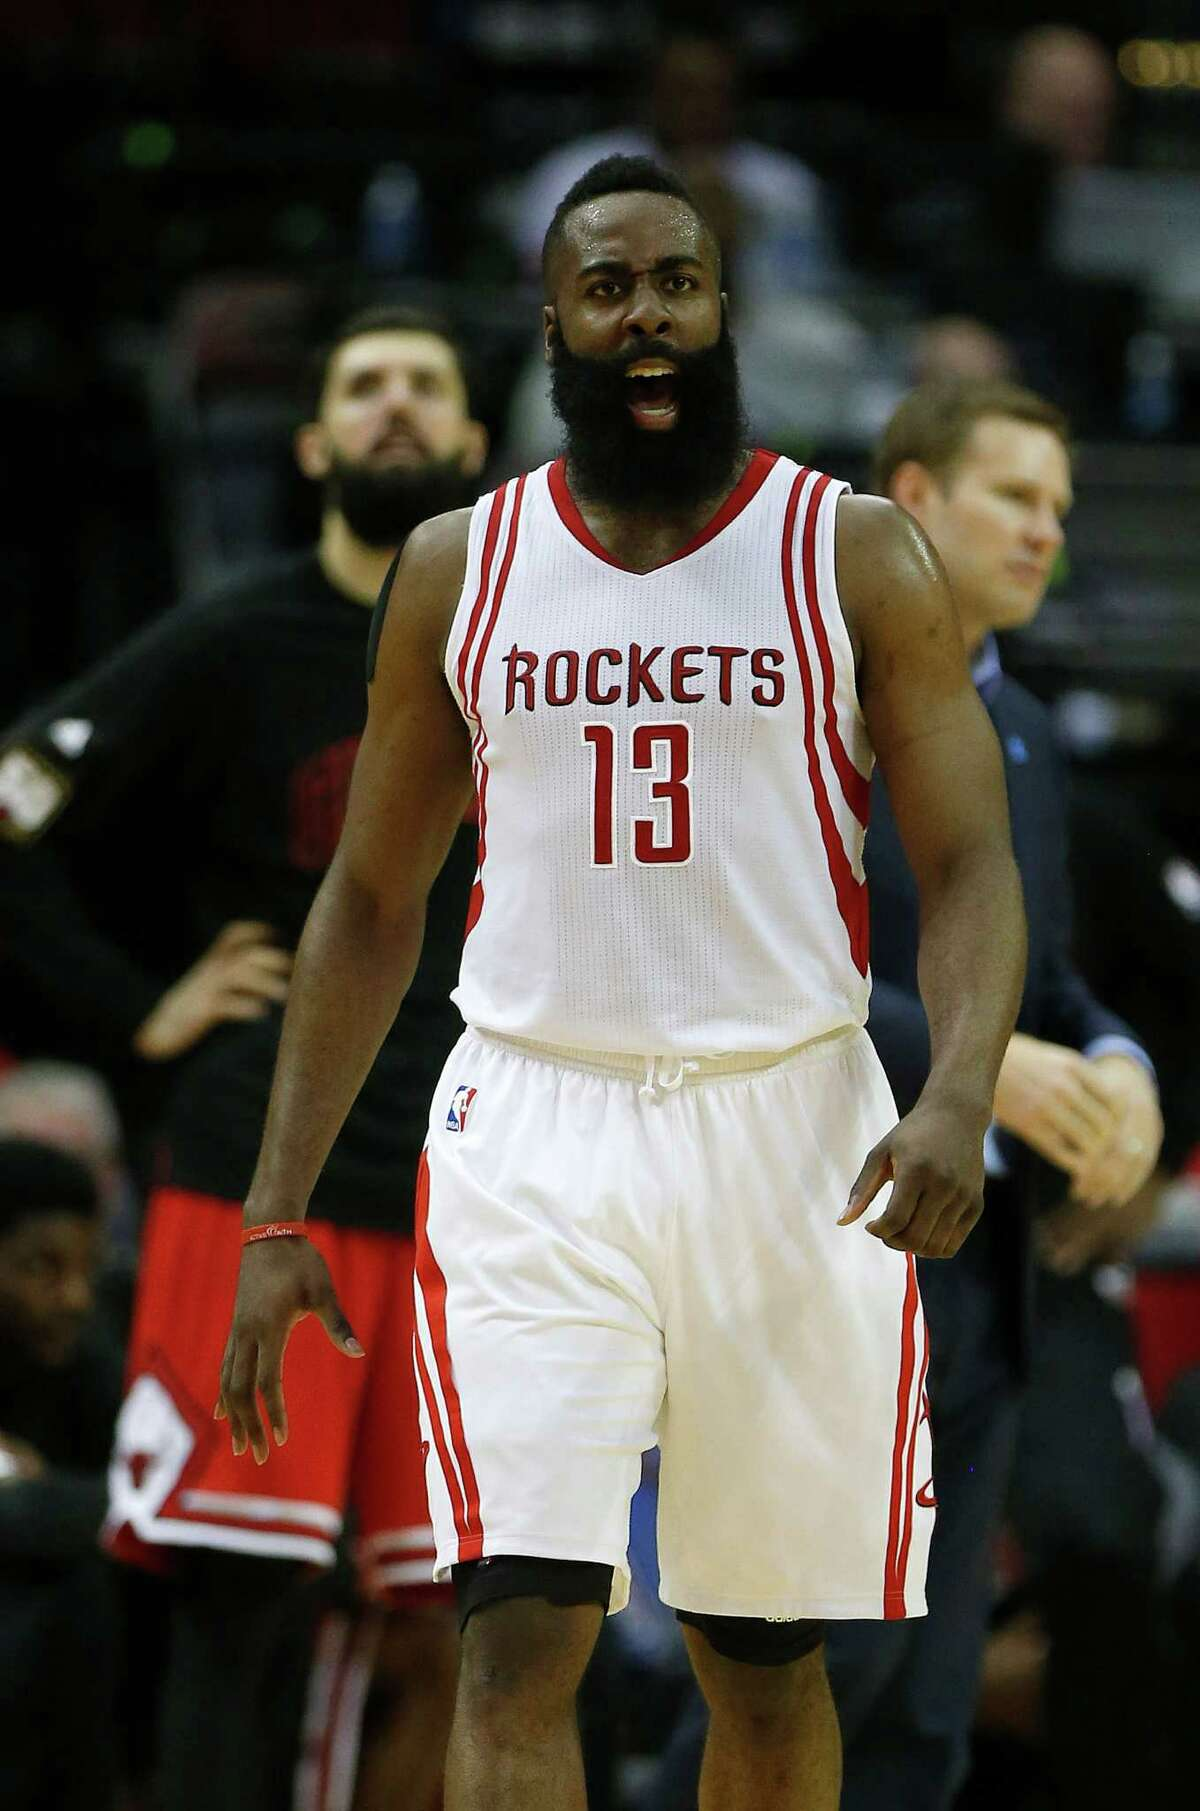 Houston Rockets guard James Harden (13) reacts after being fouled during the second half of an NBA basketball game at Toyota Center, Thursday, March 31, 2016, in Houston.